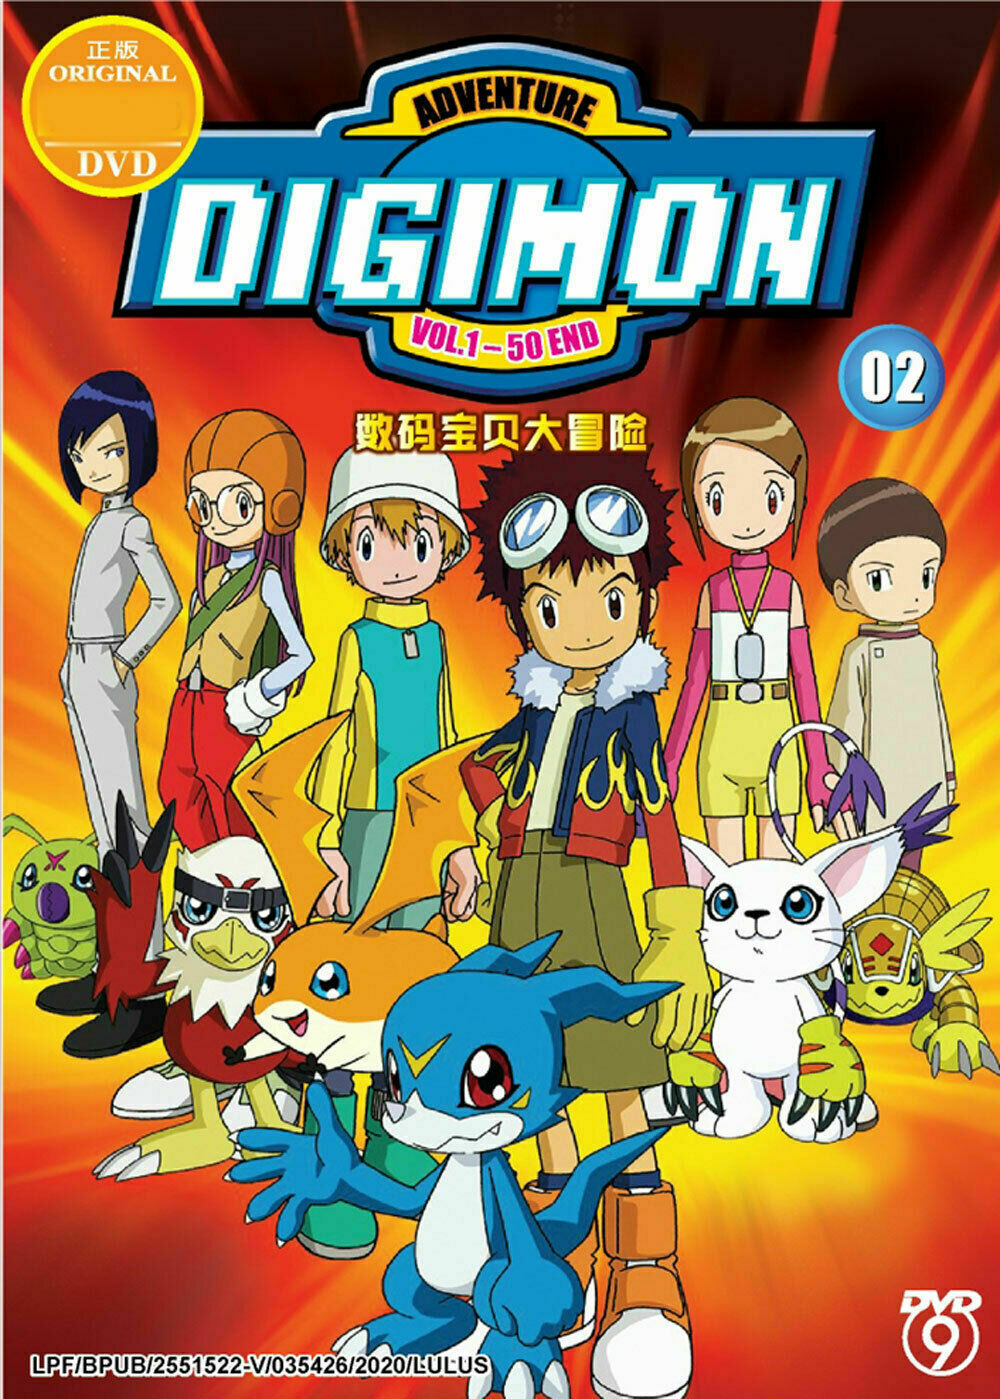 Digimon Adventure 02 (Ep 1-50 end) (English Dub) Ship out From USA